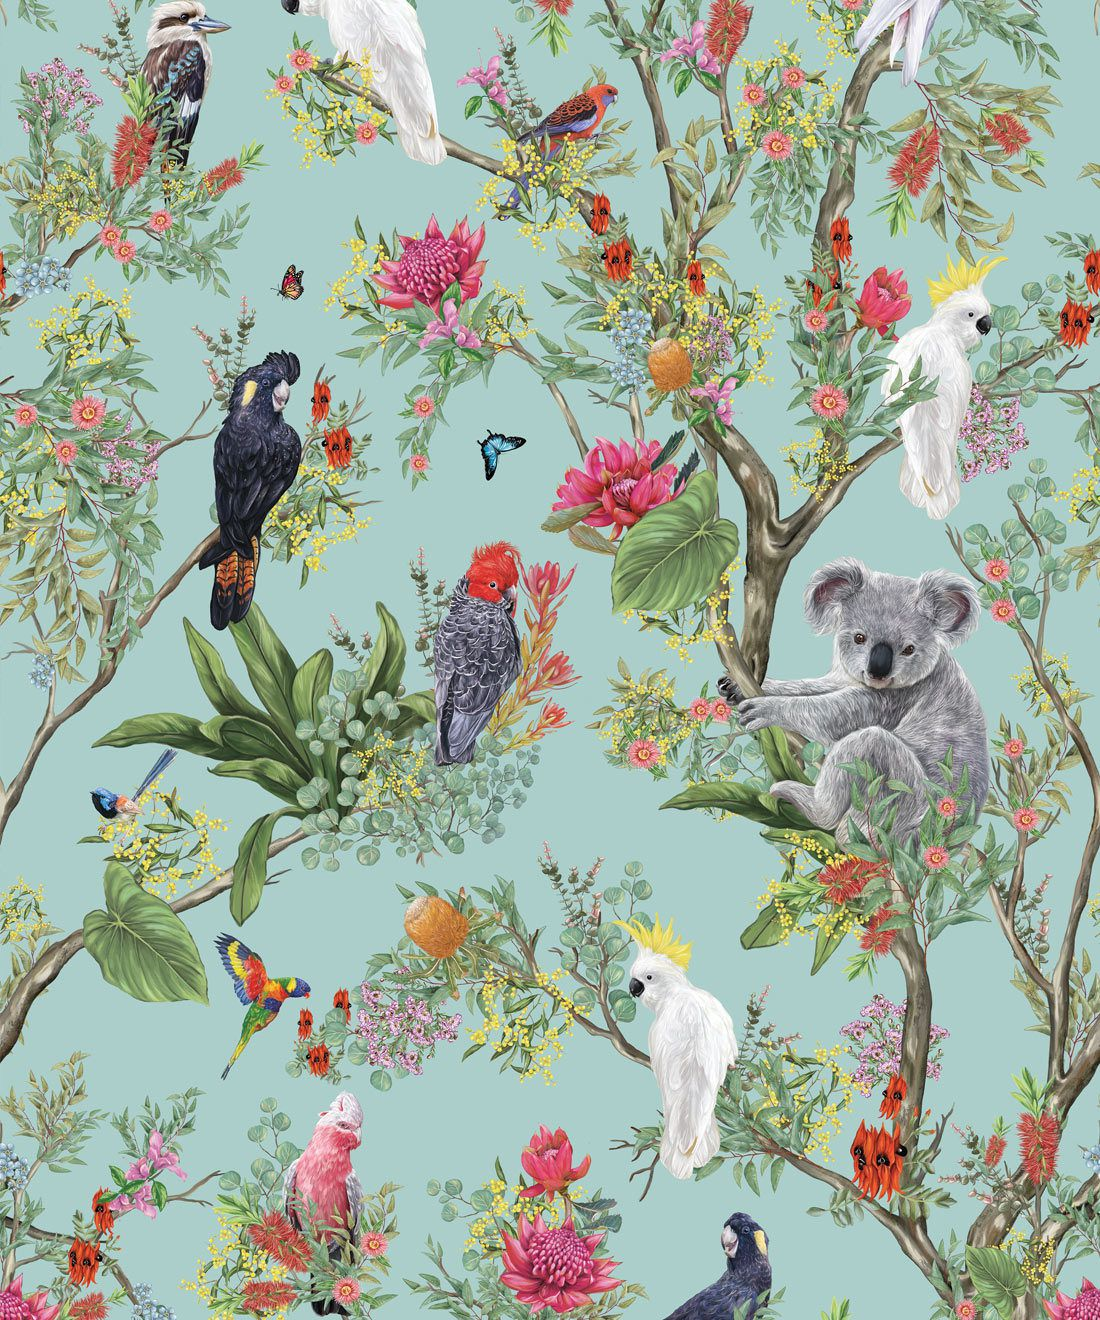 Australia Wallpaper • Cockatoos, Koalas, Parrots, Finches • Milton & King Australia • Mint Green Wallpaper Swatch